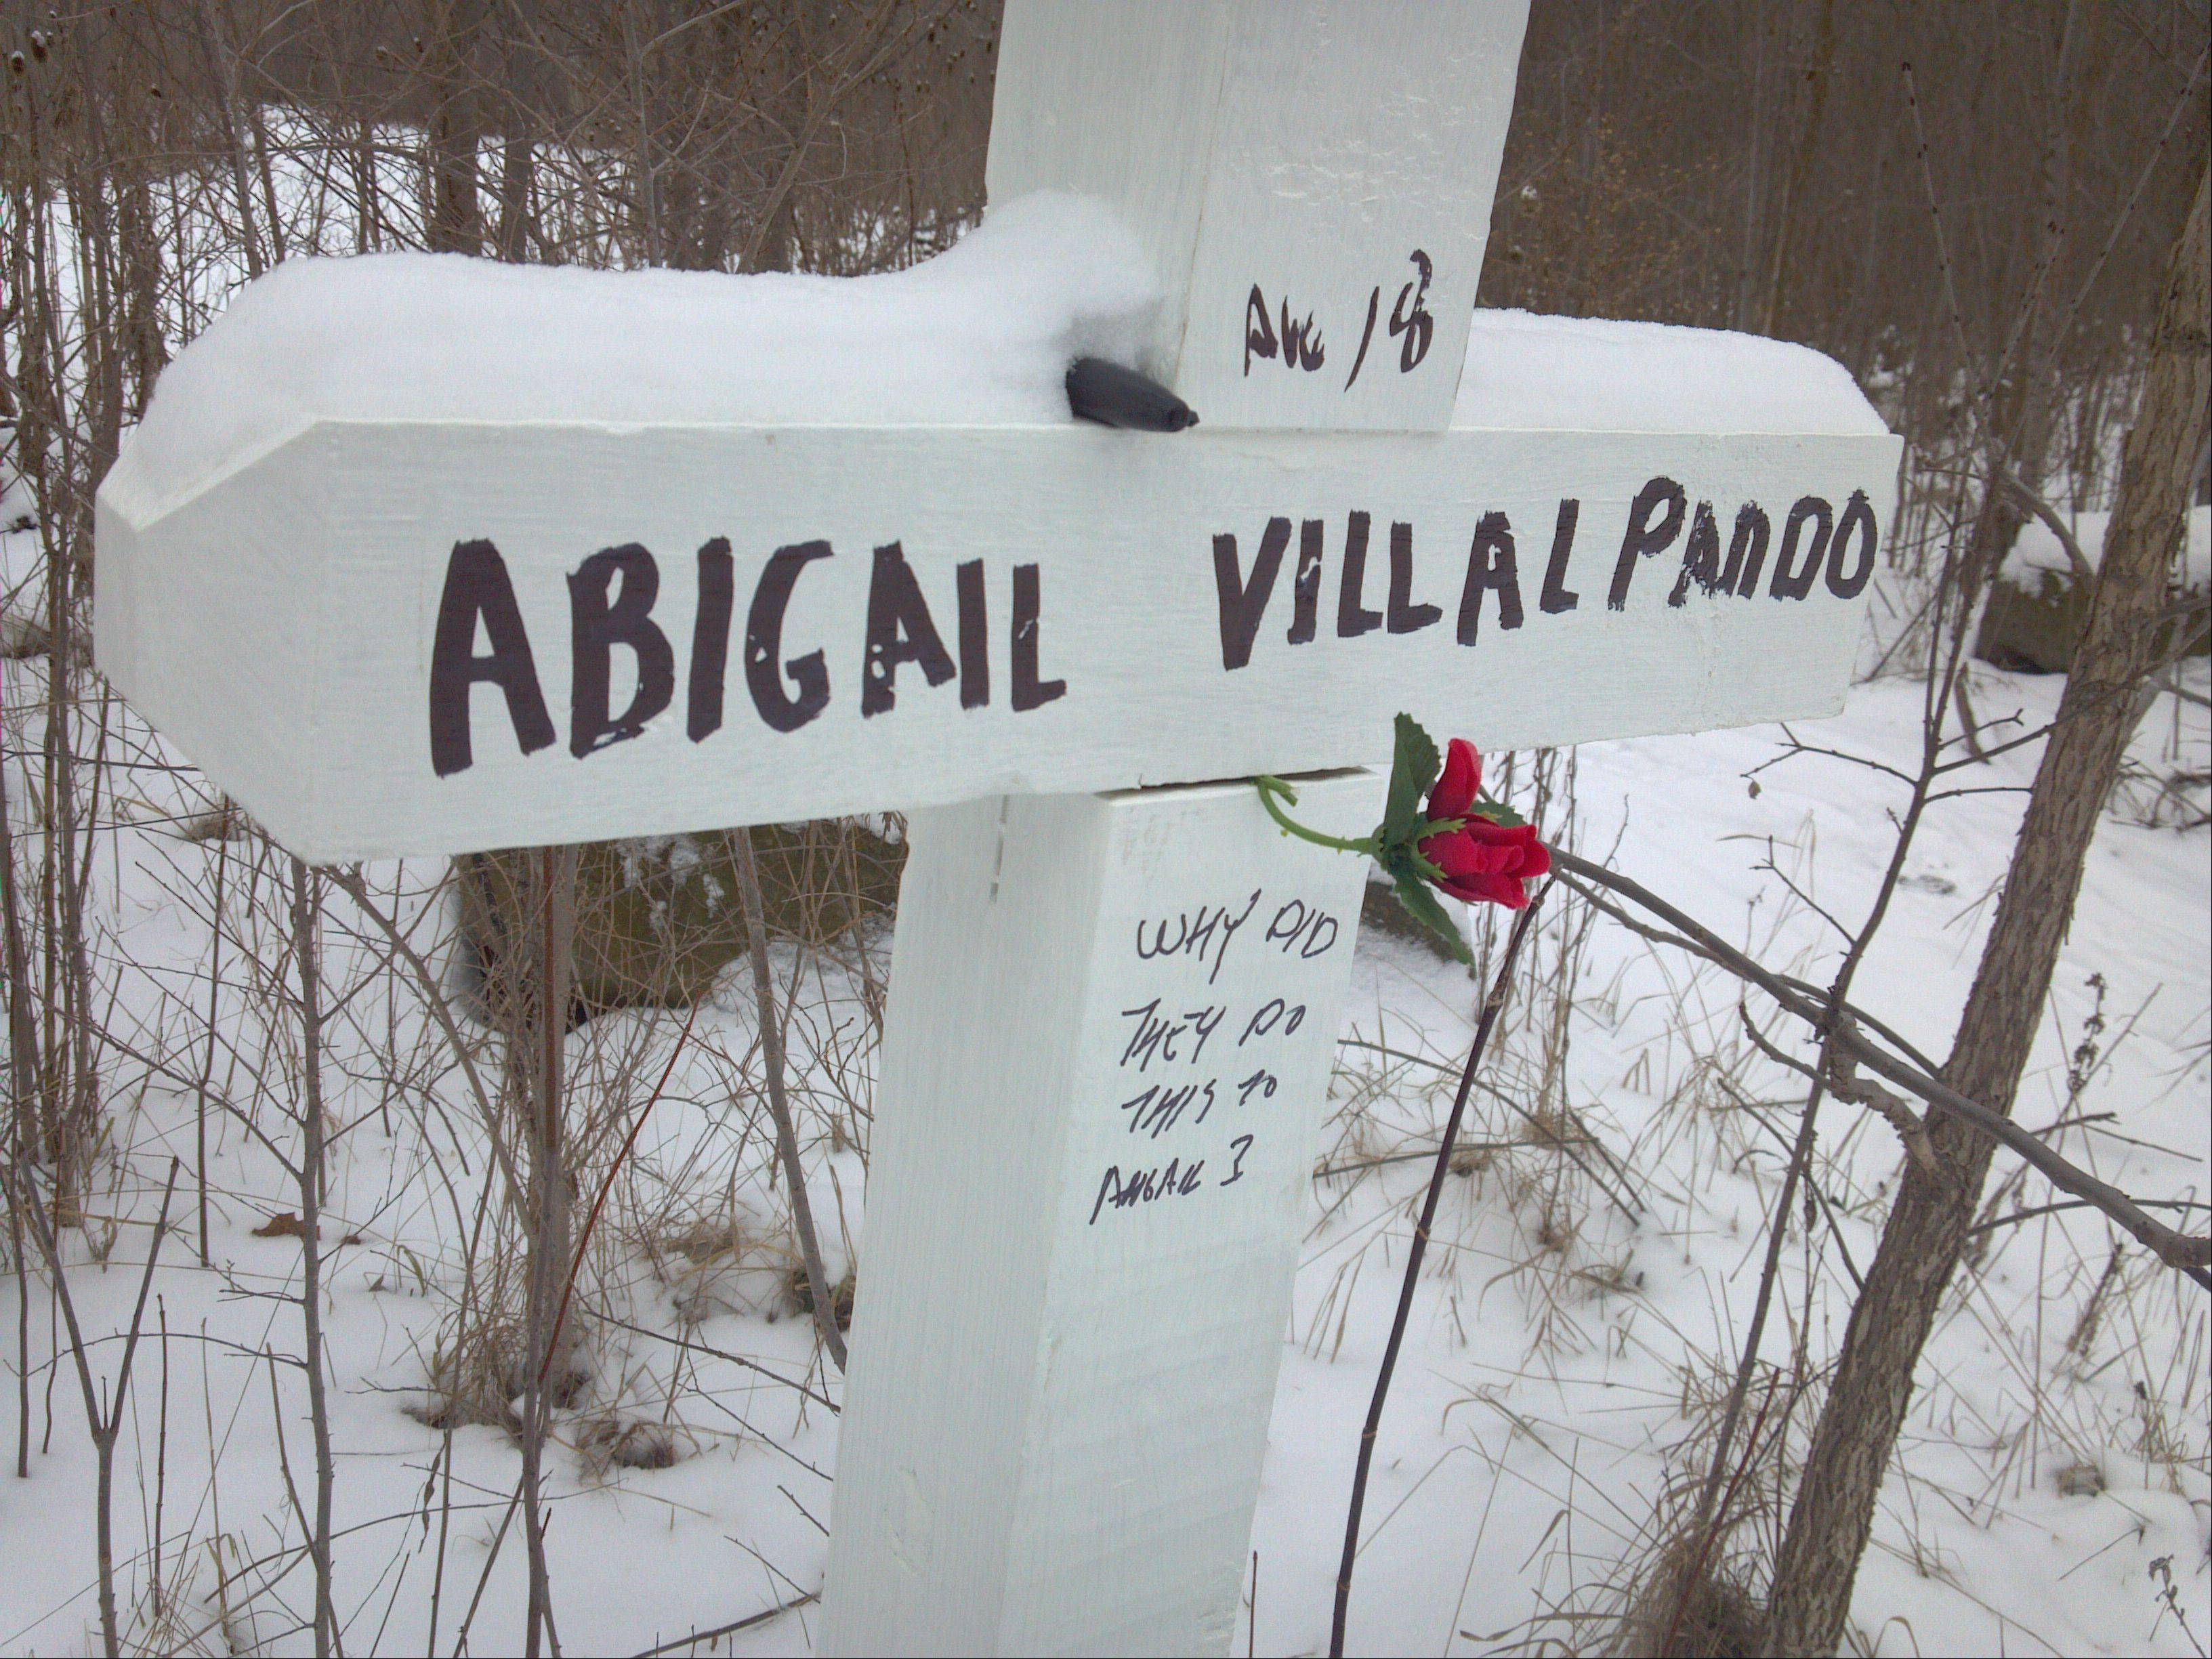 A white cross in memory of Abigail Villalpando was placed near Fifth Street and Wabansia Avenue in Montgomery. Authorities said the burned body of Villalpando, 18, of Aurora, was found there. Three men have been charged in connection with her murder, which was the first homicide in Aurora since late 2011.